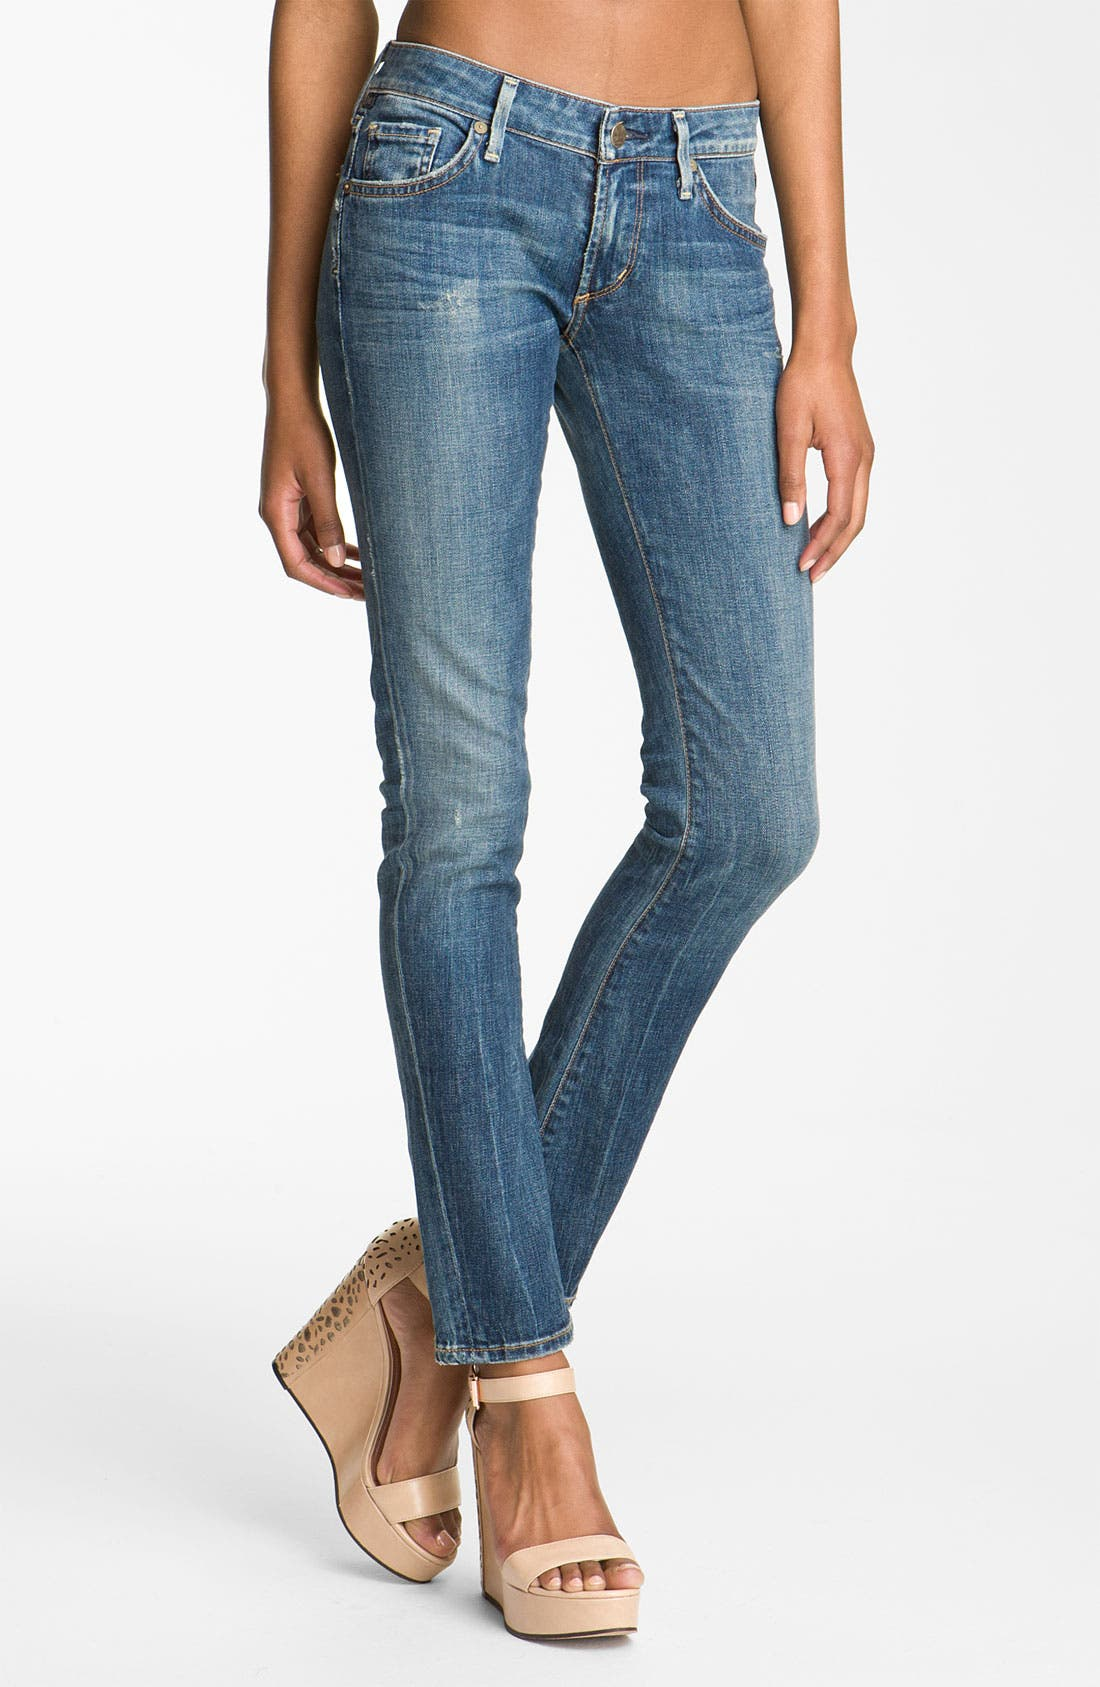 Alternate Image 1 Selected - Citizens of Humanity 'Racer' Low Rise Skinny Jeans (Slash)